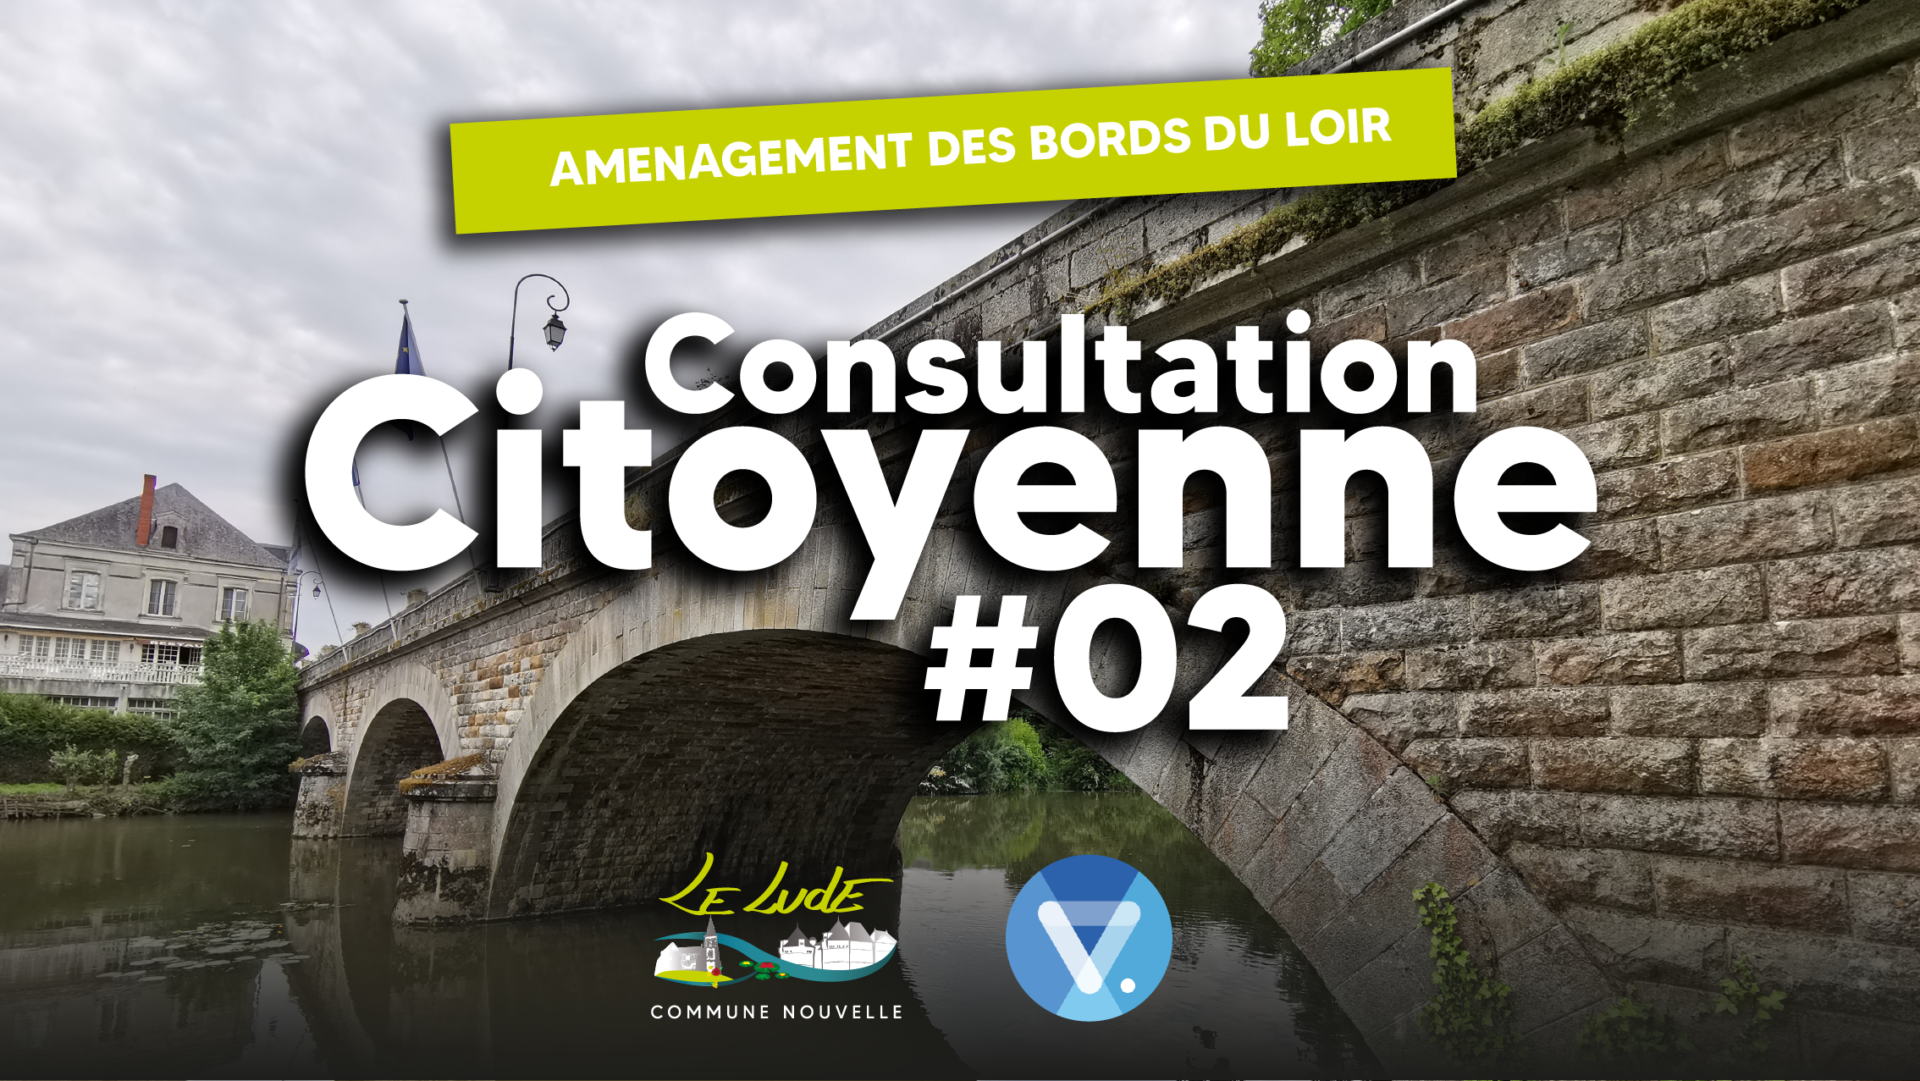 You are currently viewing Bords du Loir : Consultation citoyenne #02